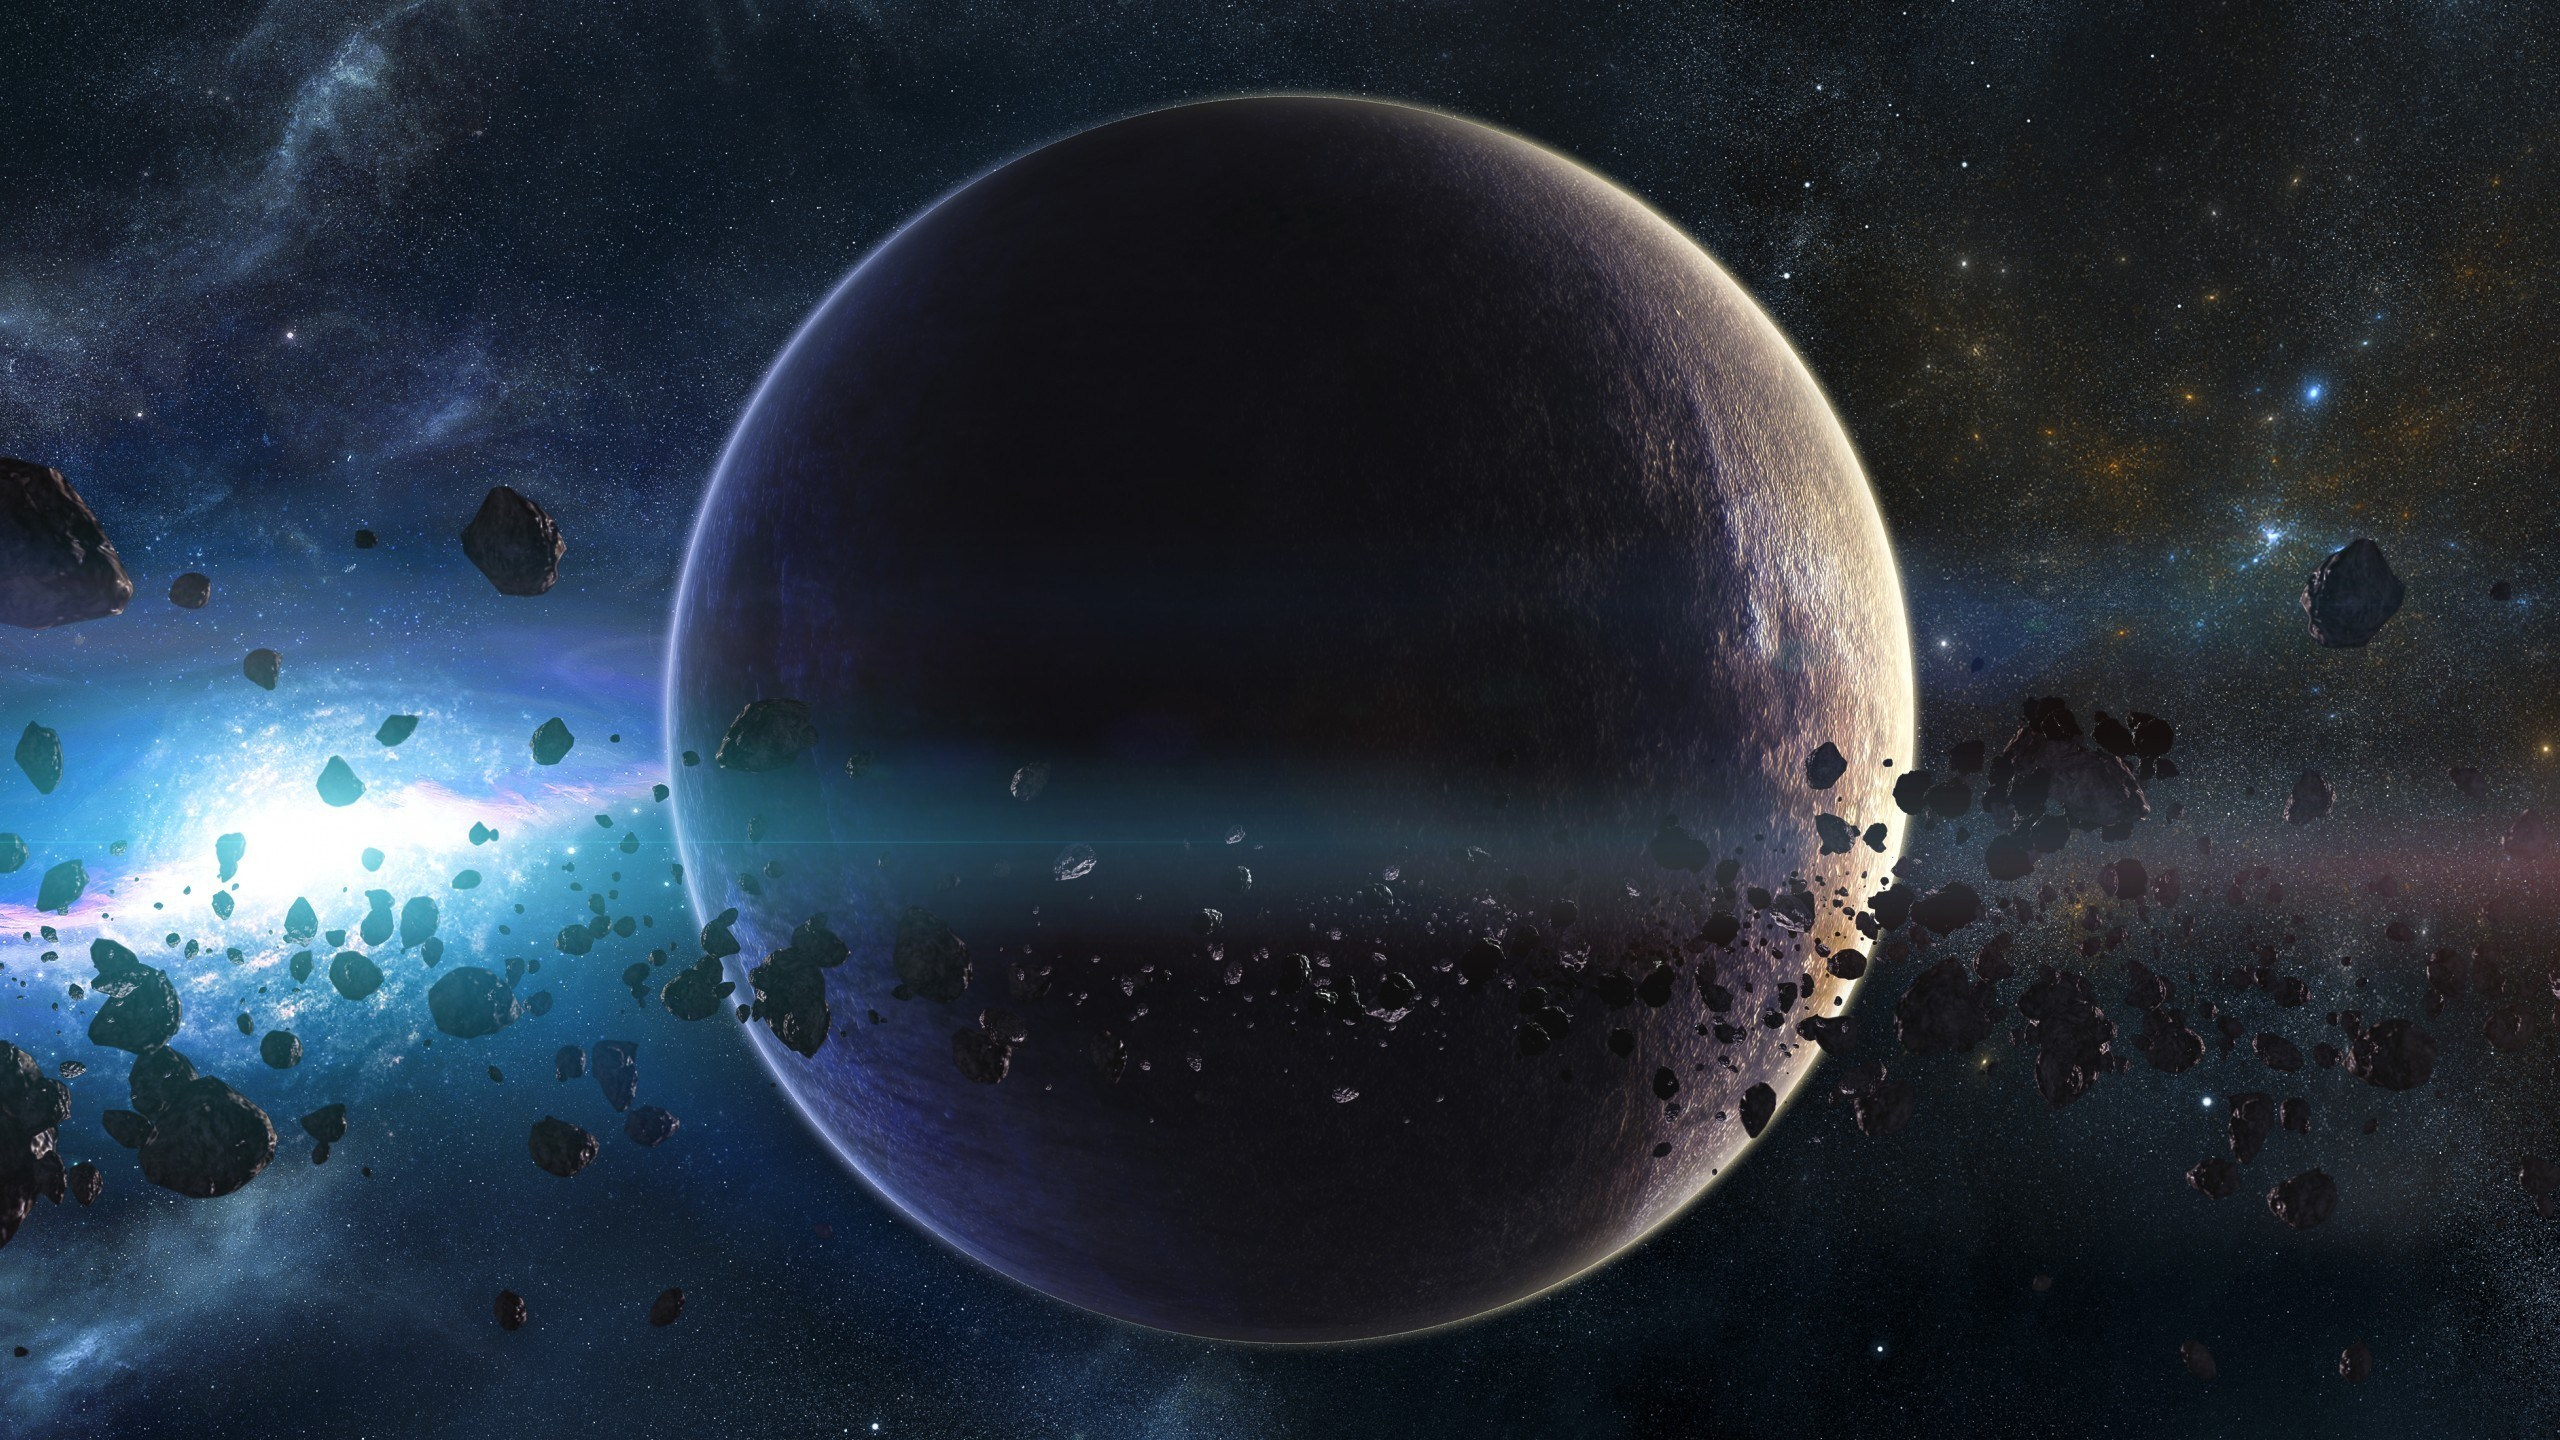 Space planets asteroids 2560 x 1440 - Space 2560 x 1440 ...